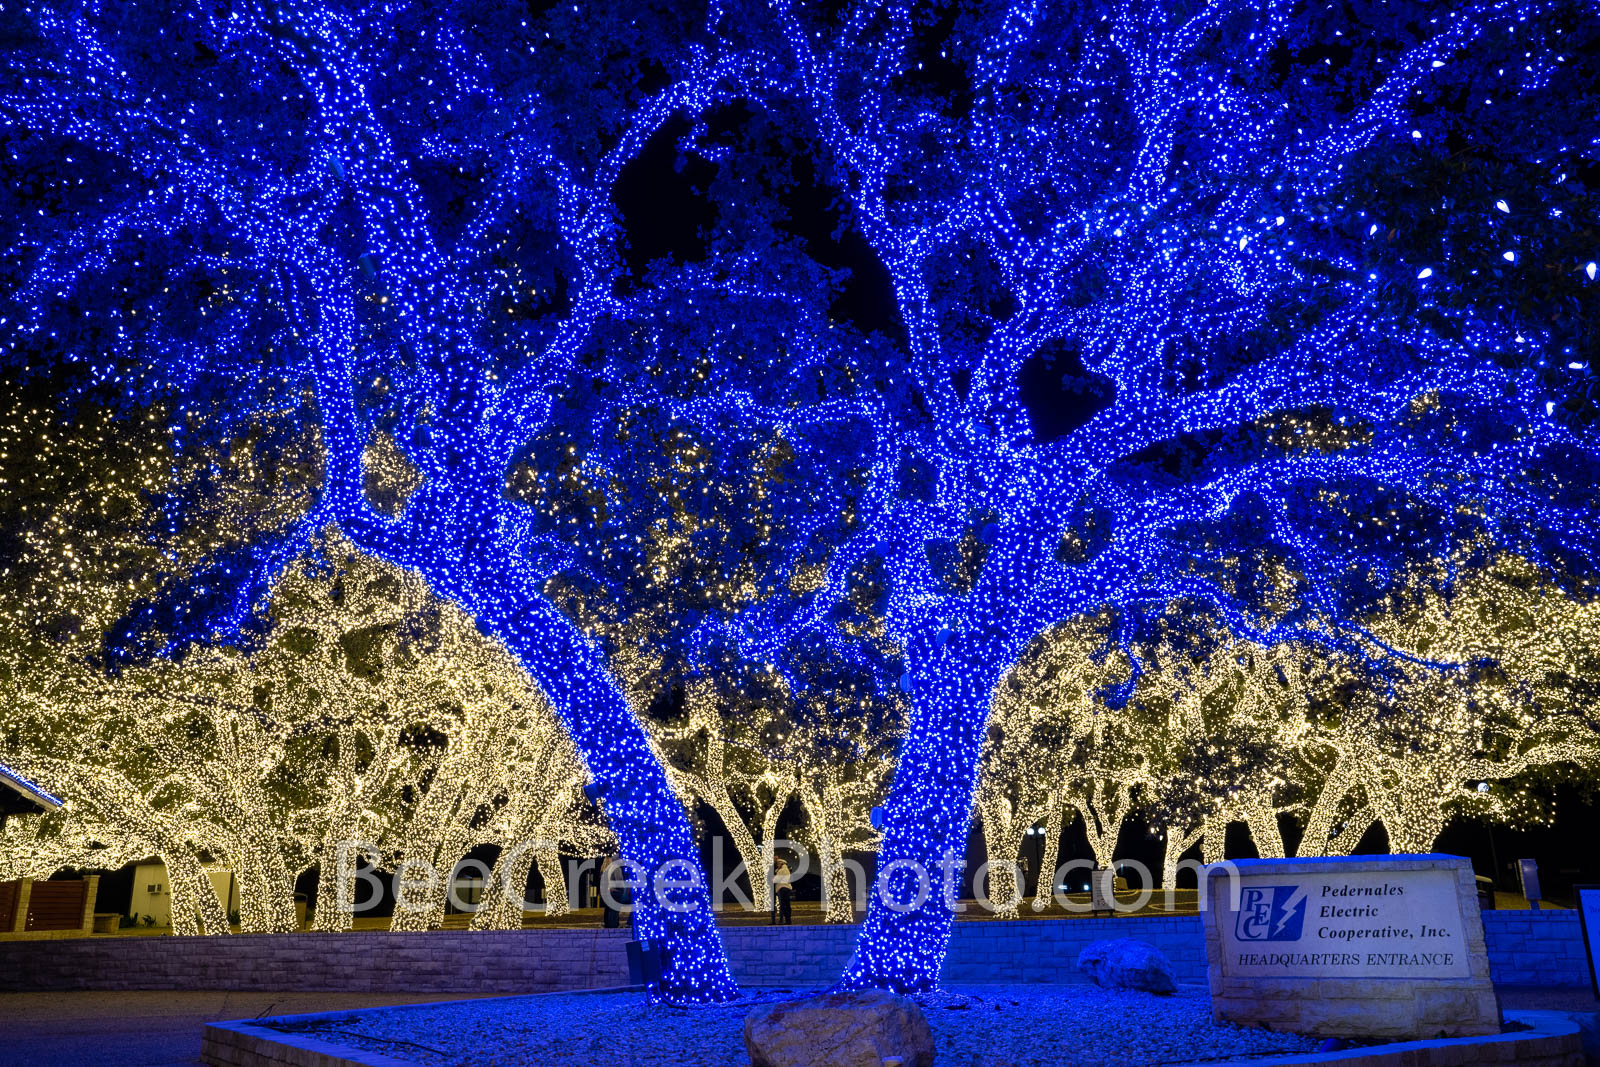 texas hill country, texas hill country christmas, pedernales electric cooperative, johnson city, christmas lights, johnson city, blue lights, white lights, christmas decorations, trees, hill country, , photo